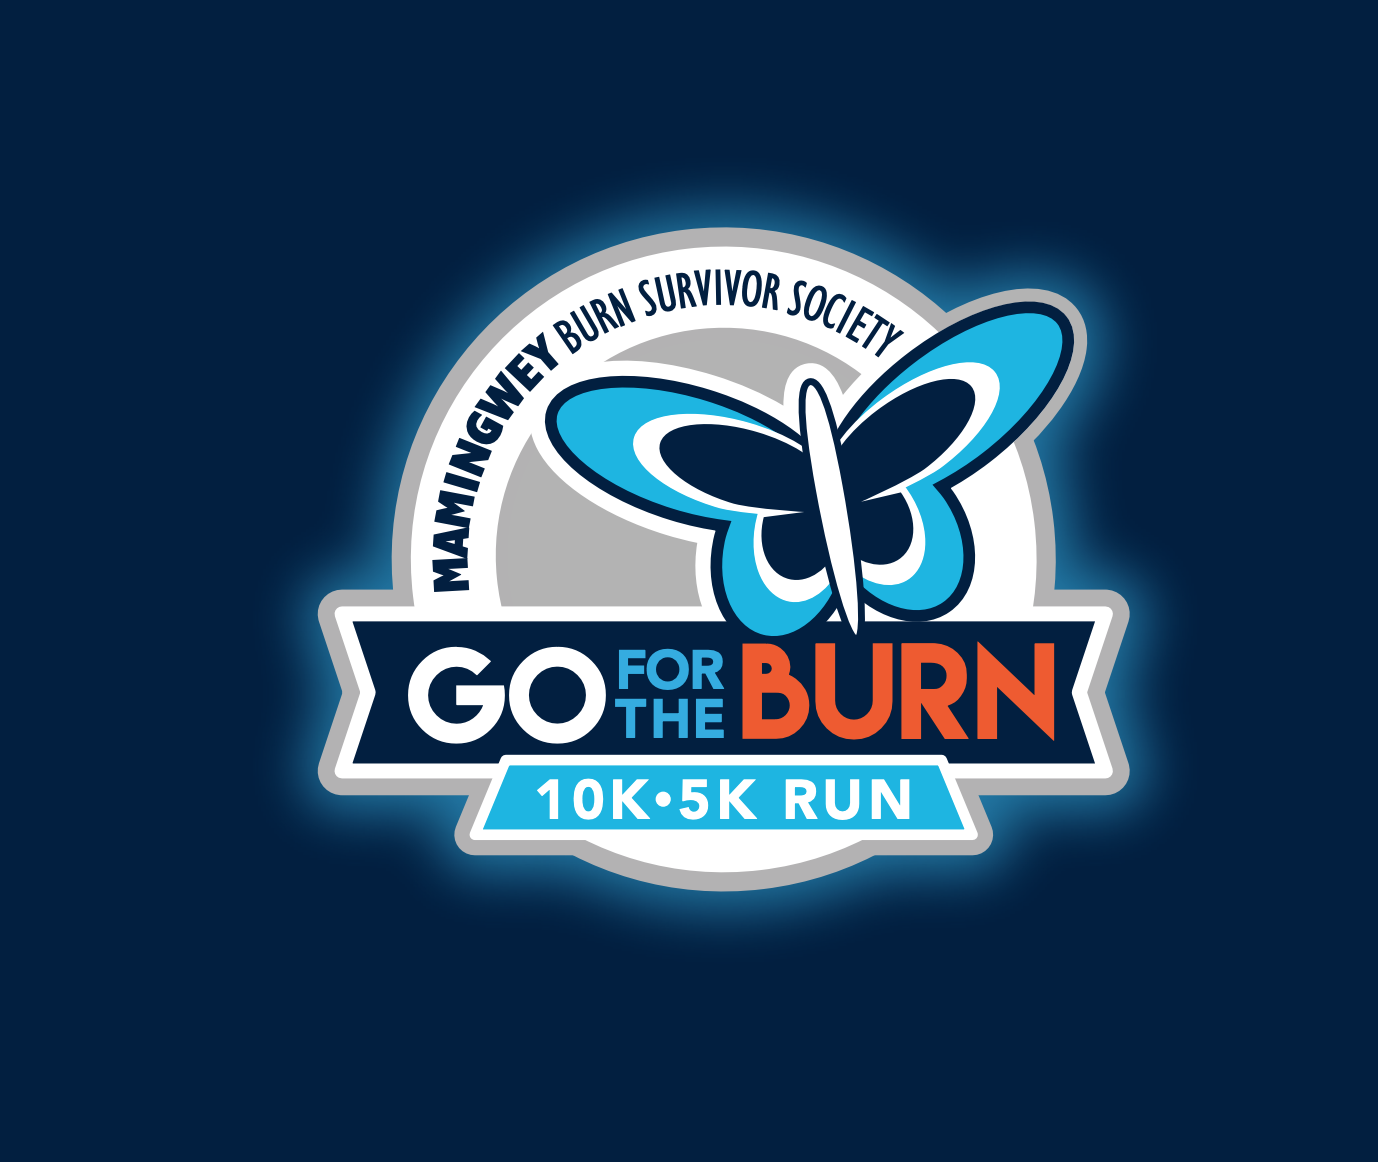 The Go for the Burn Run 2020 will be on April 25th at Assiniboine Park!